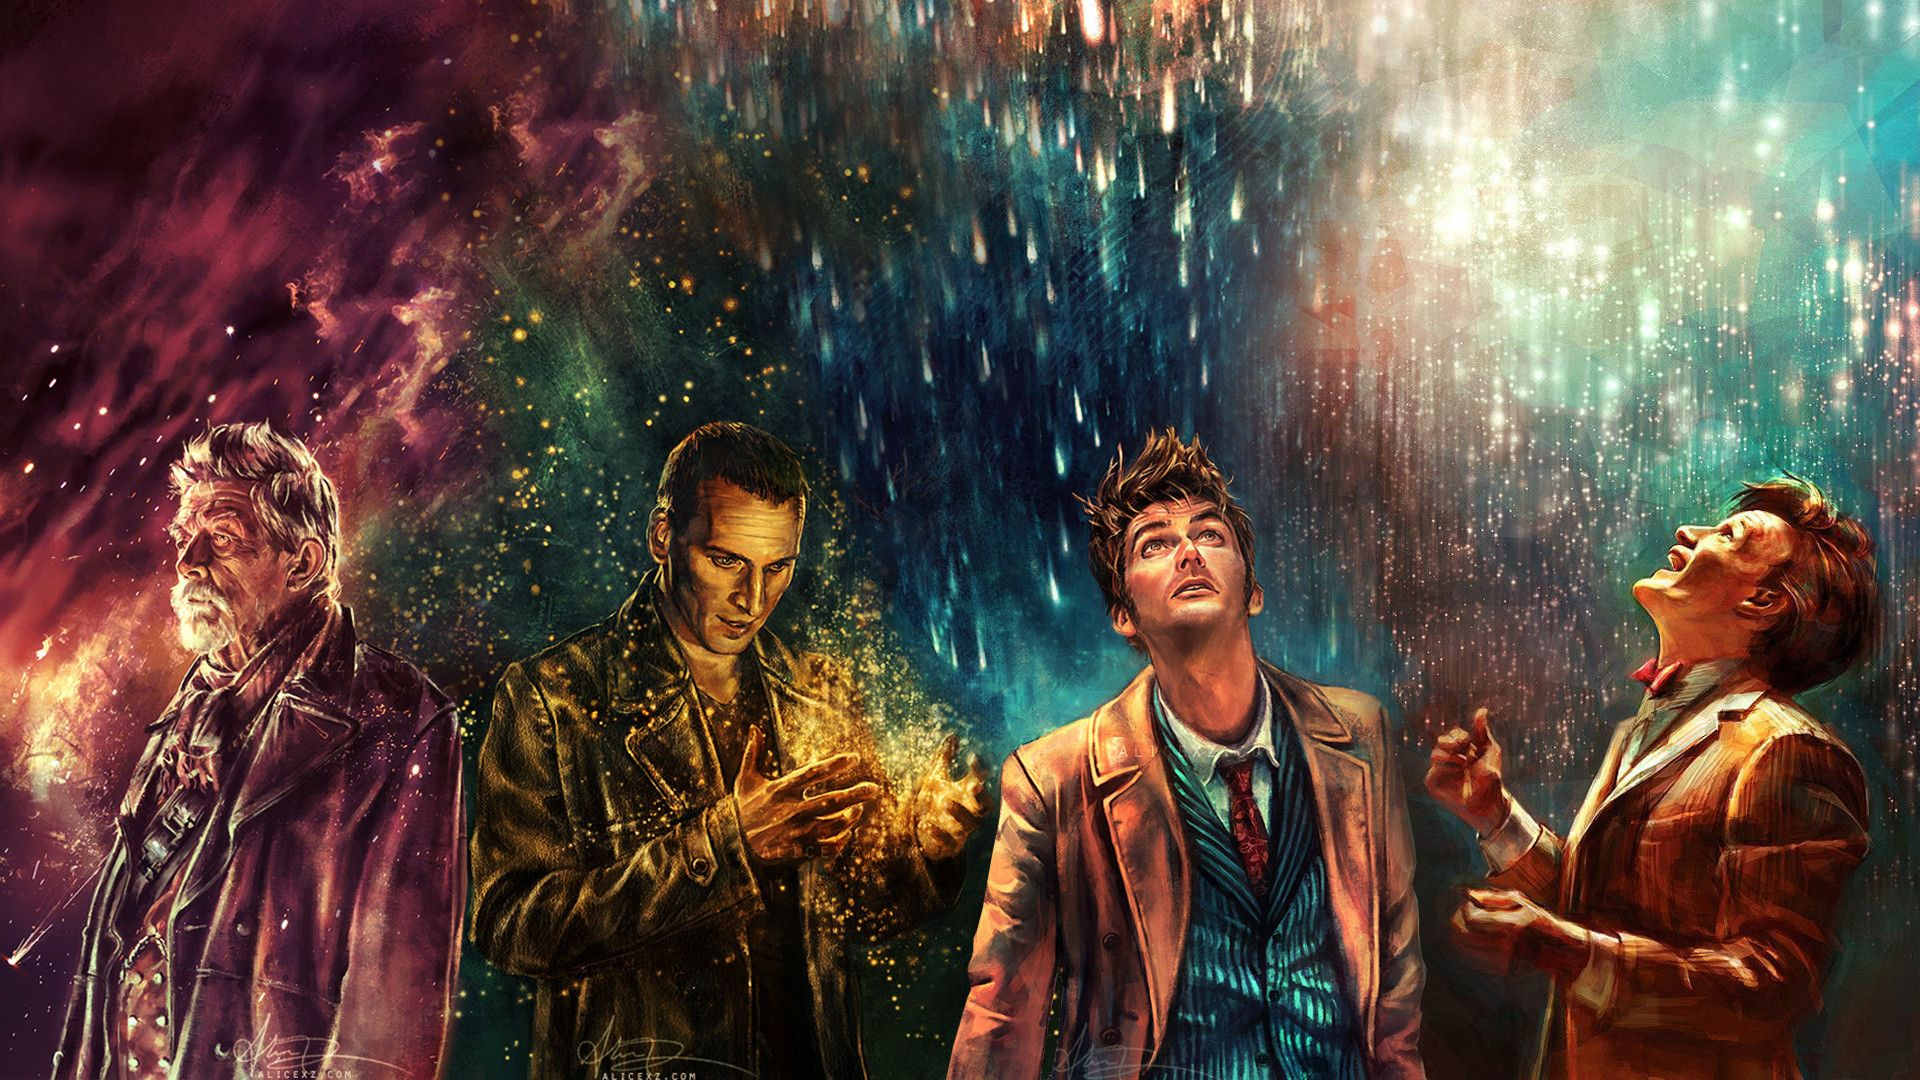 This is my favorite Doctor Who wallpaper so far. It's composed of 4 separate images